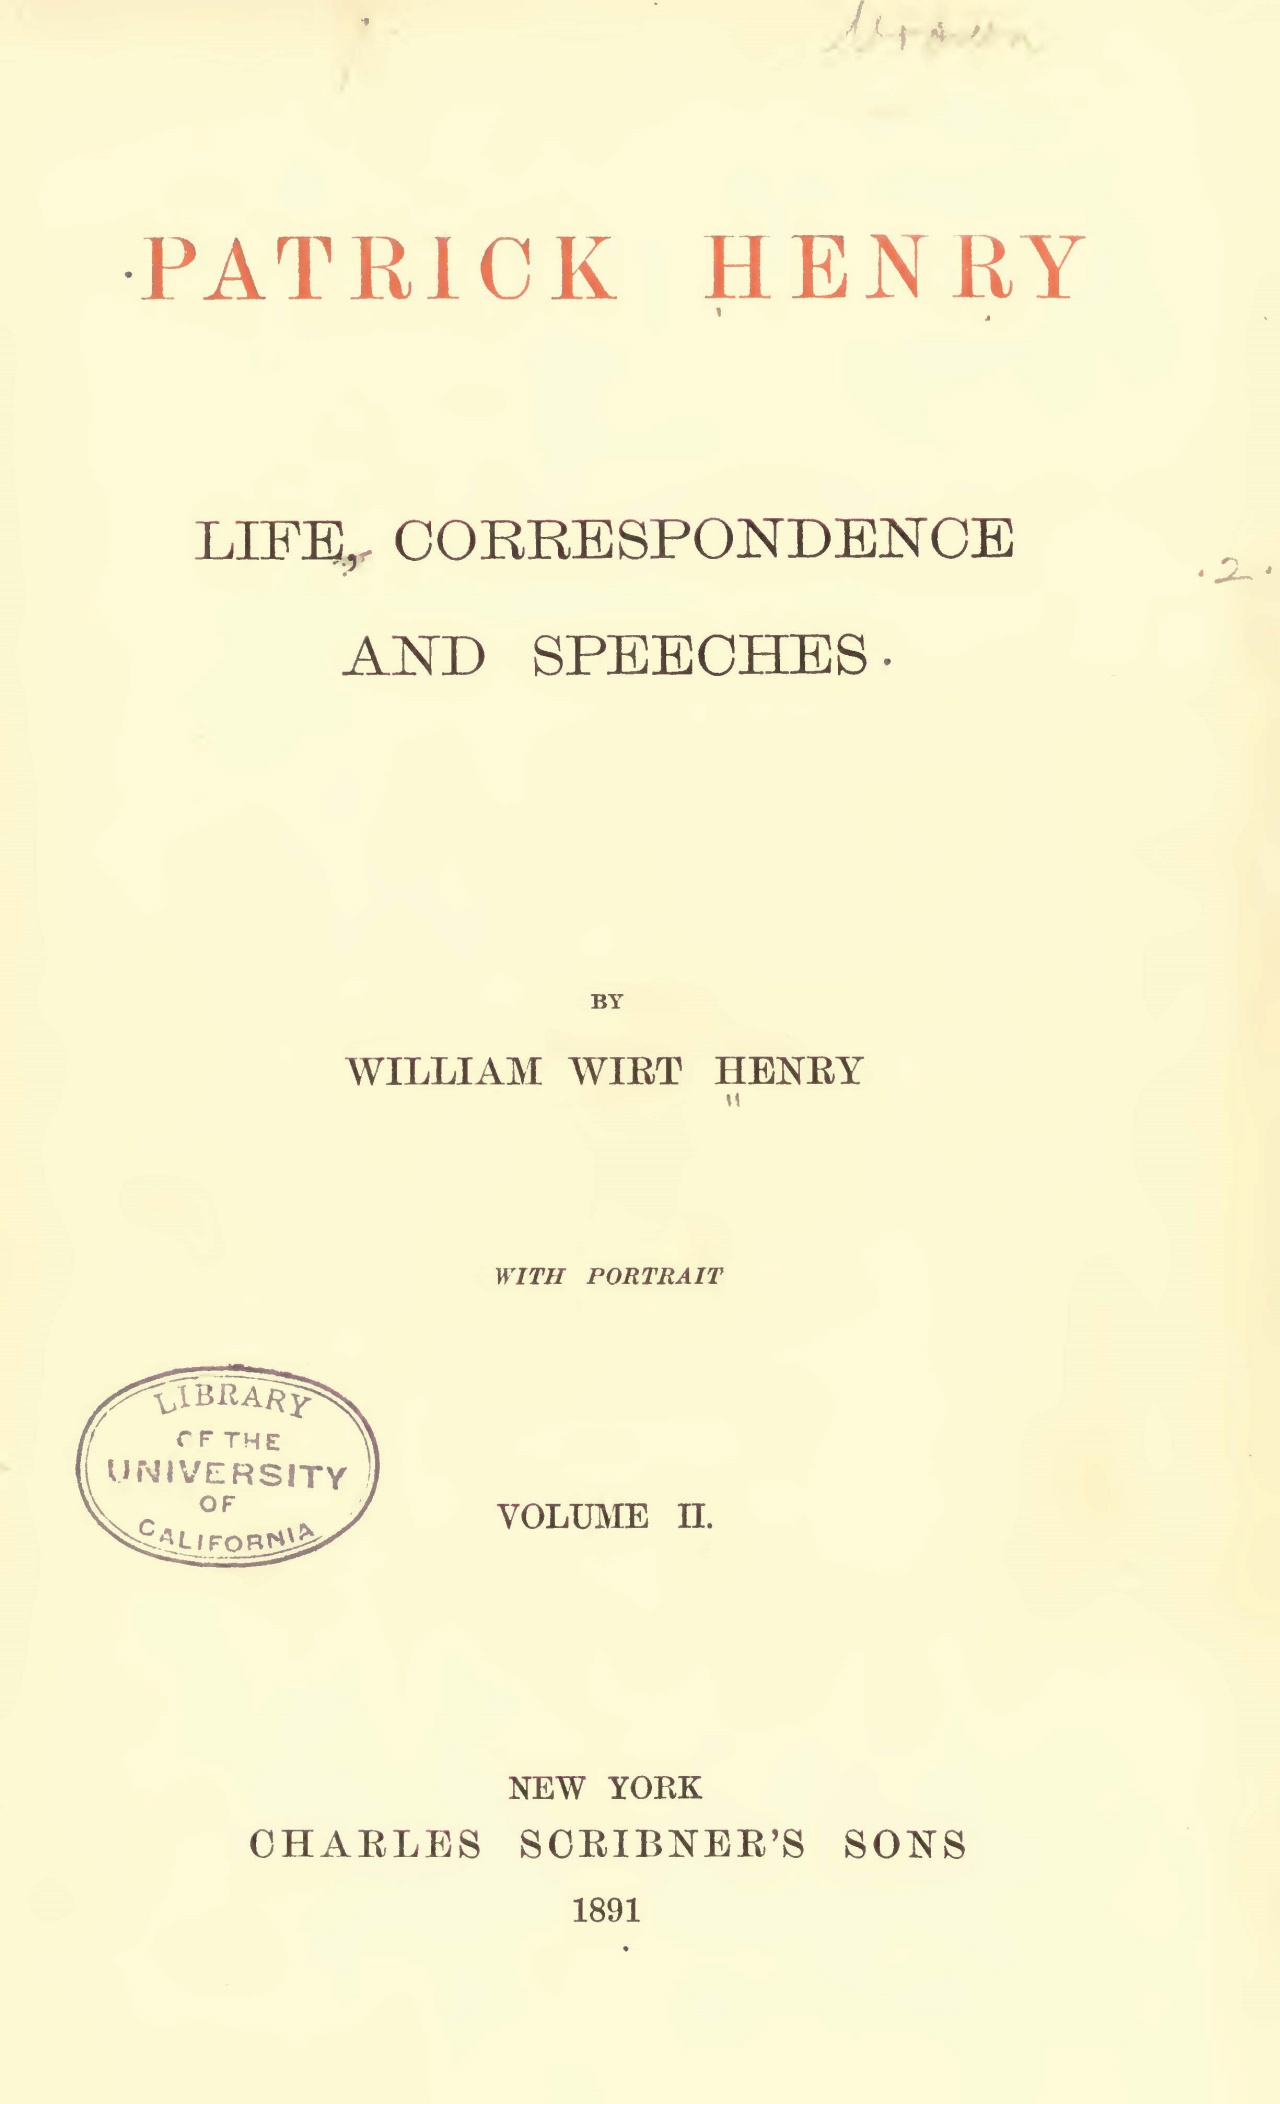 Henry, William Wirt, Patrick Henry Life Correspondence and Speeches, Vol. 2 Title Page.jpg